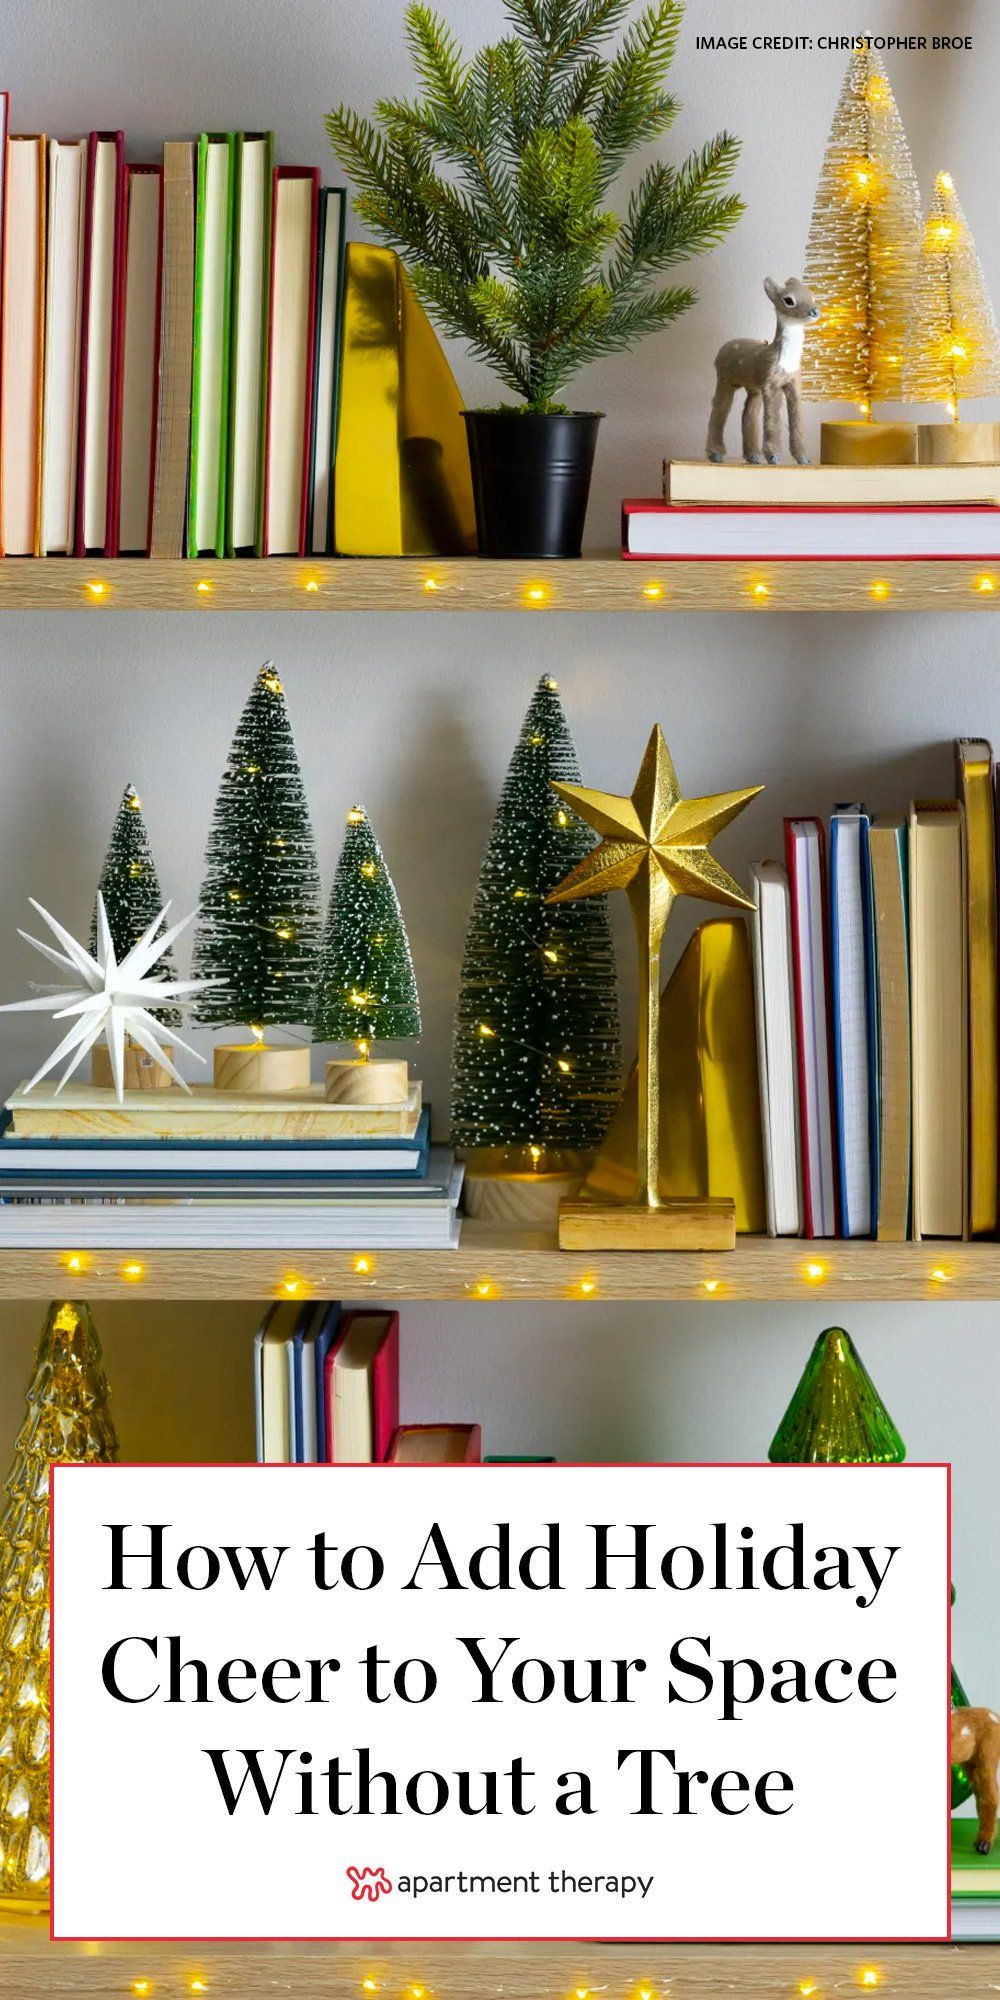 How To Add Holiday Cheer To Your Space Even If You Don T Have Room For A Tree Holiday Bookshelves Christmas Decorations Holiday Cheer